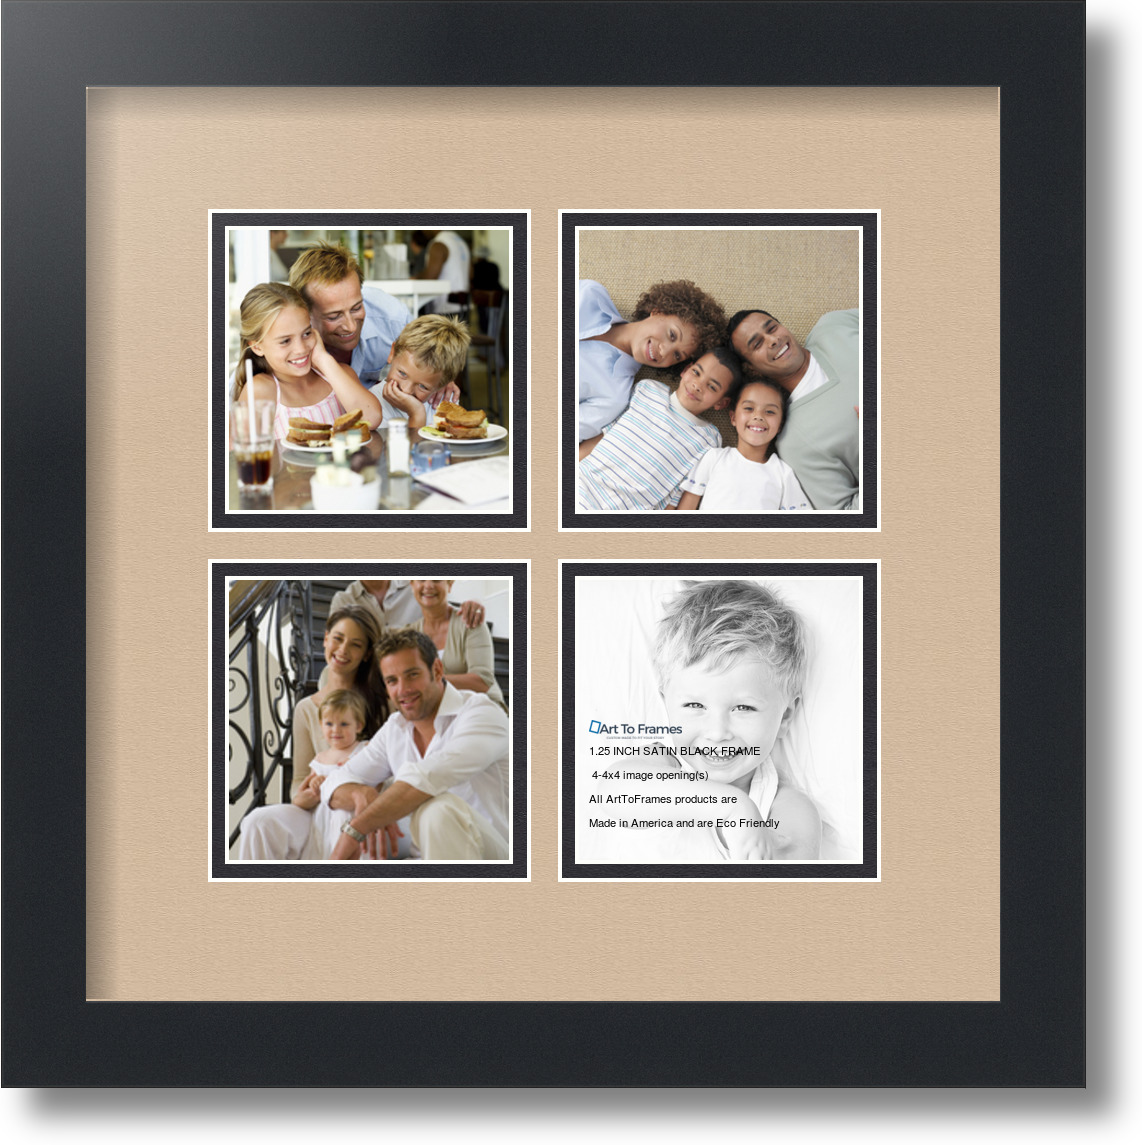 Arttoframes Collage Mat Picture Photo Frame 4 4x4